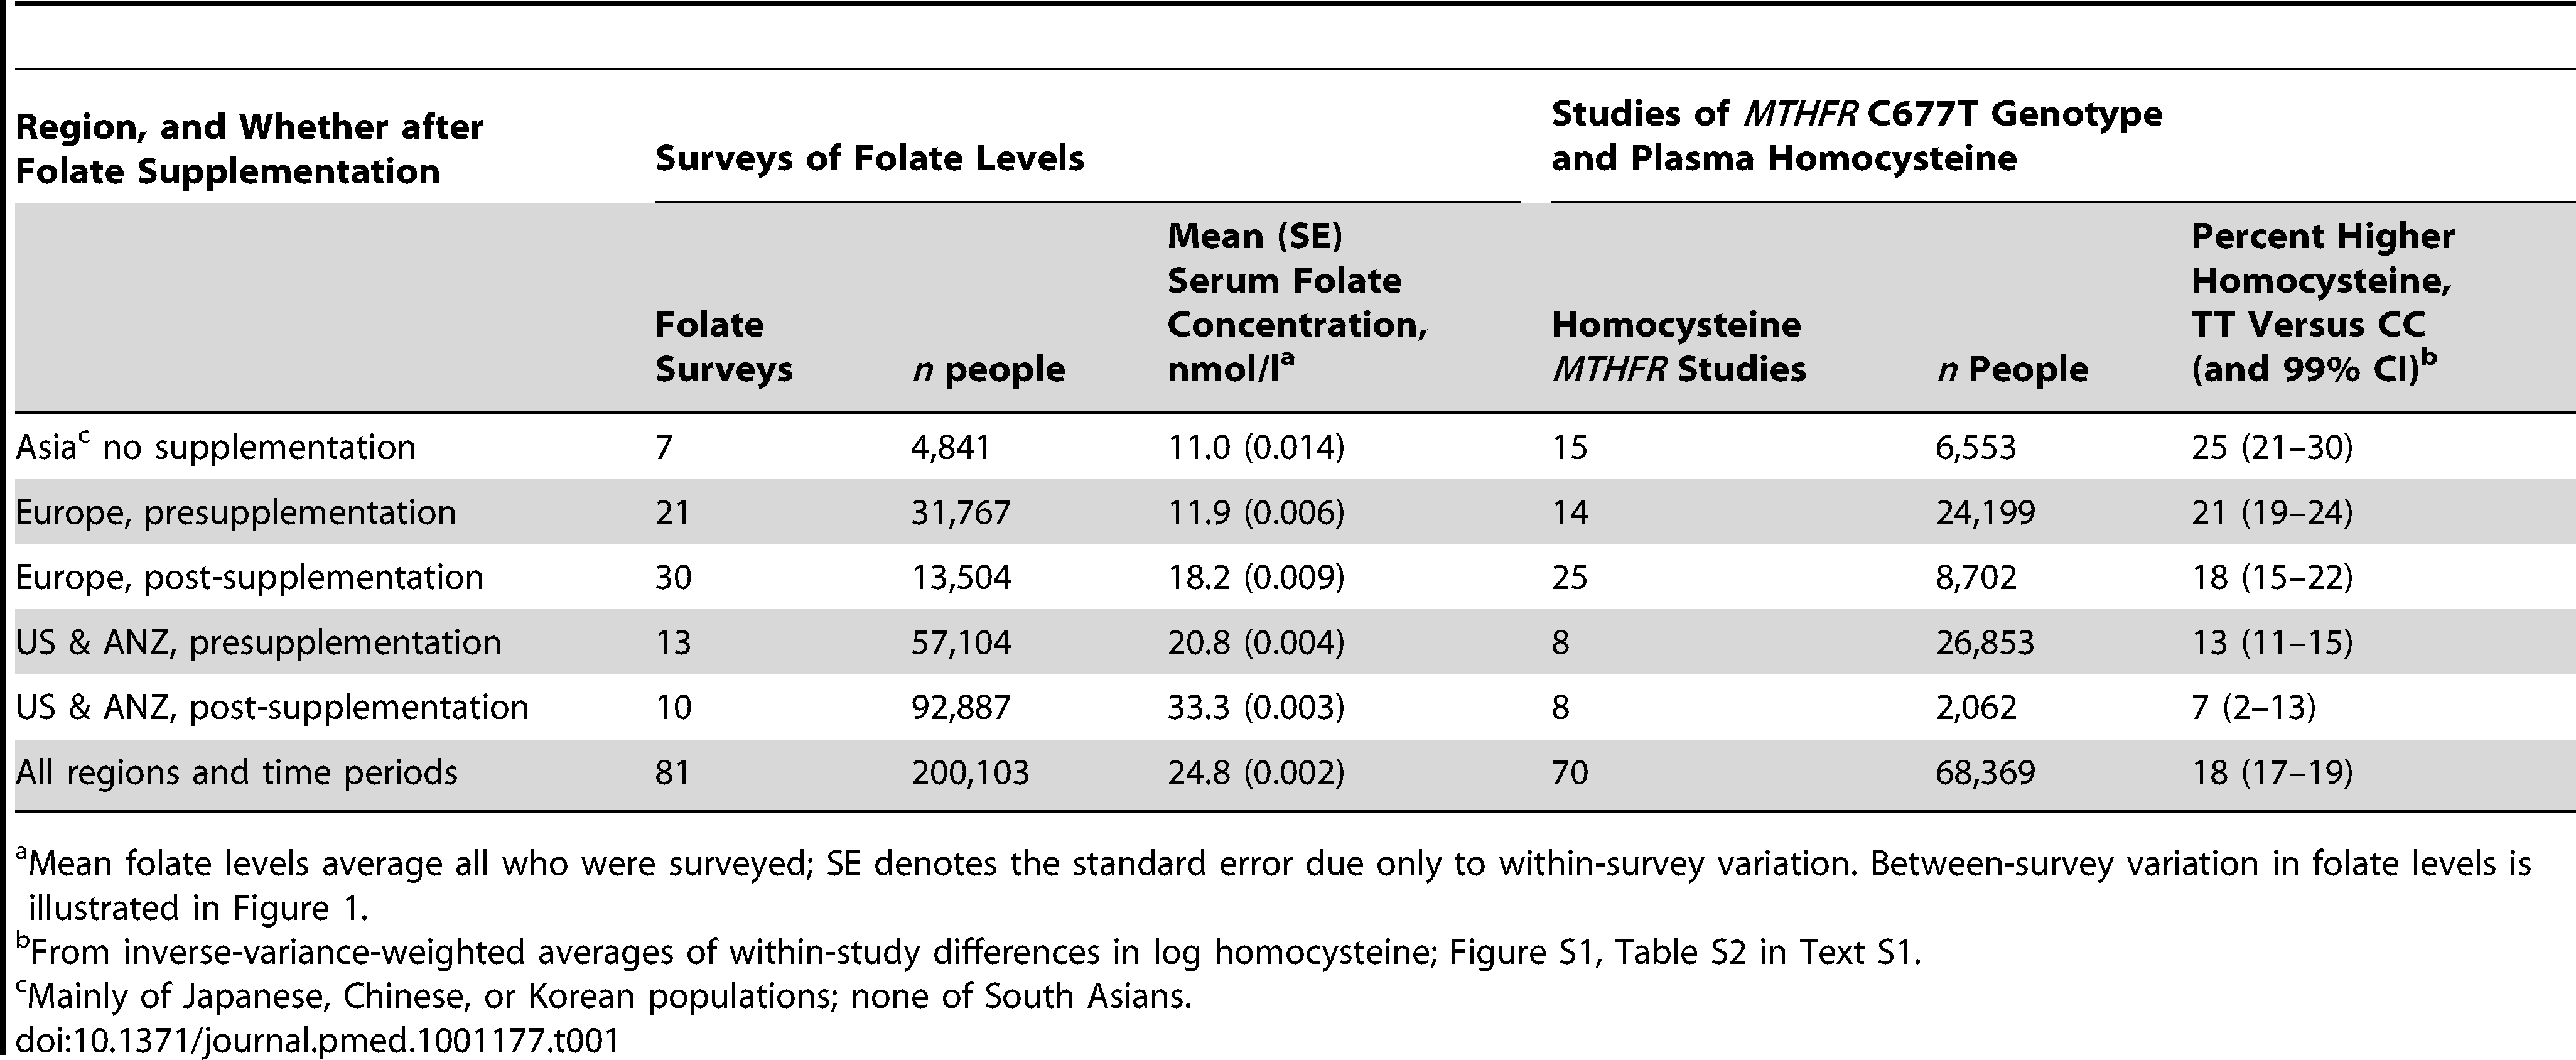 Relevance in population surveys of study place and time to (i) the mean general population serum folate level, and (ii) the excess plasma homocysteine level in the TT versus CC <i>MTHFR</i> C677T genotype.